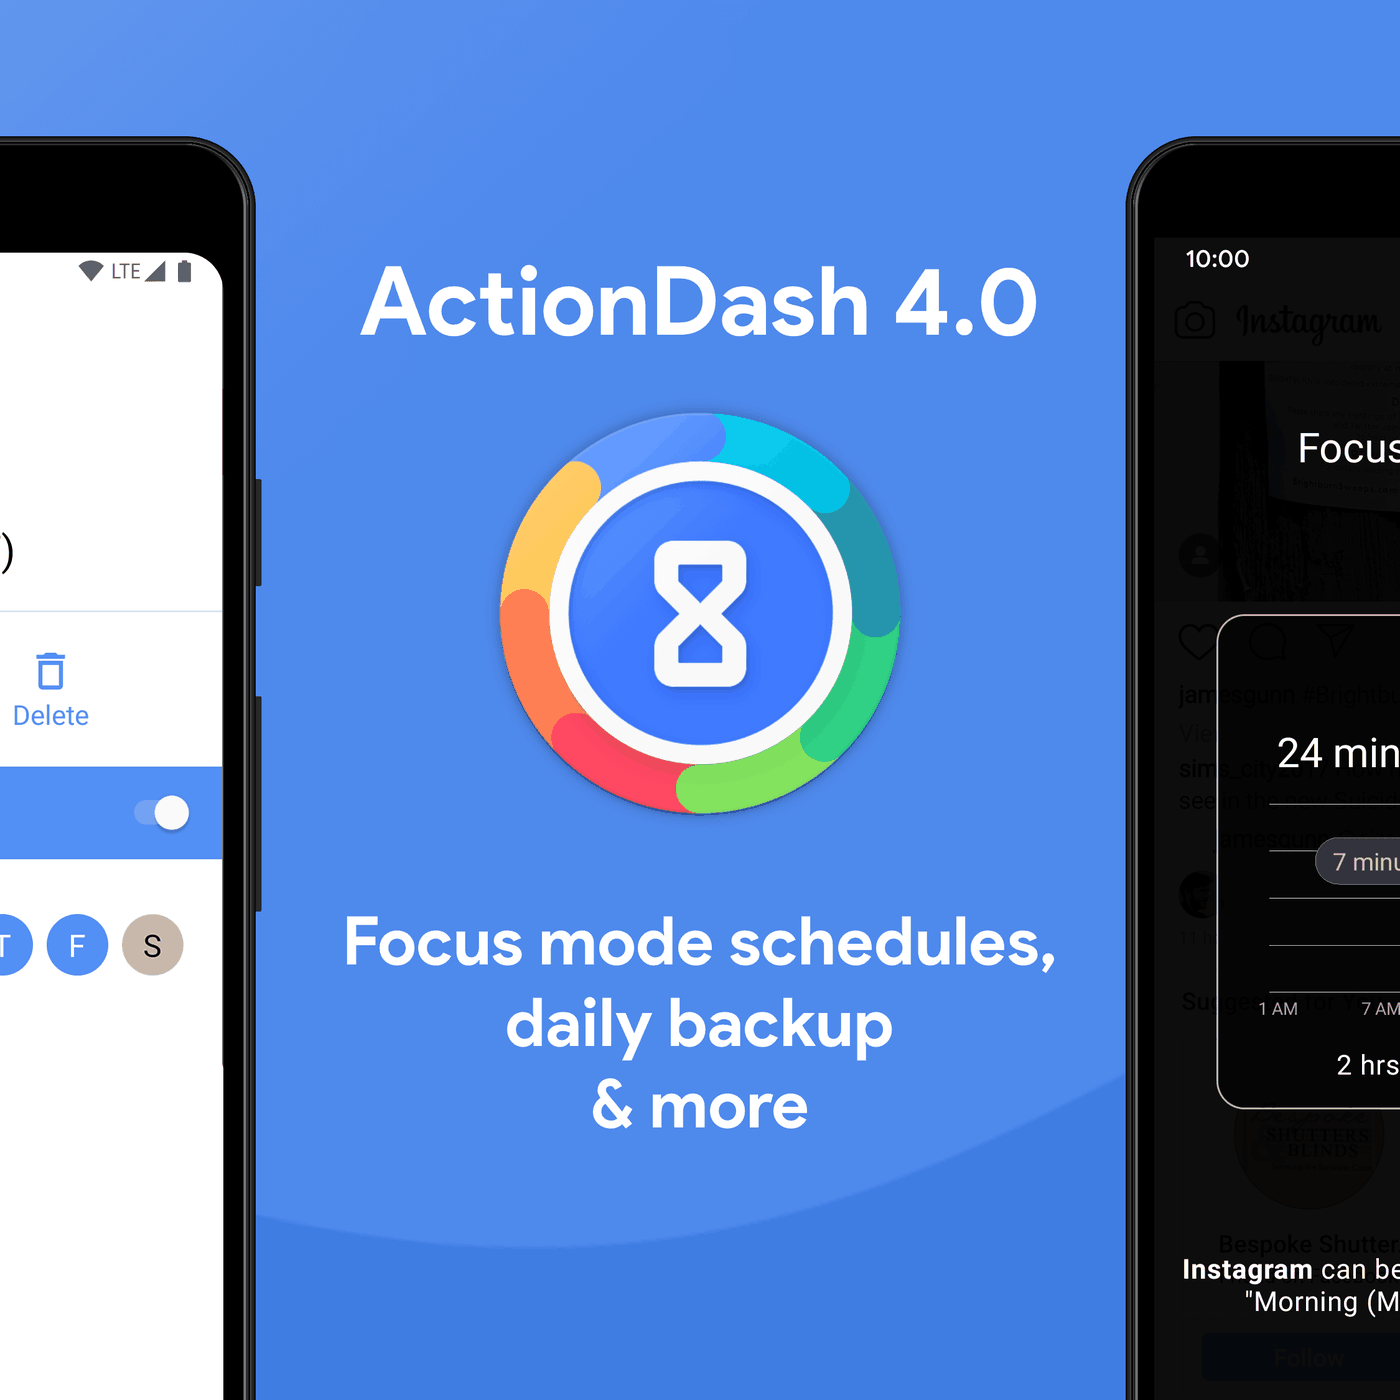 ActionDash's new Focus mode schedules let you easily block work apps